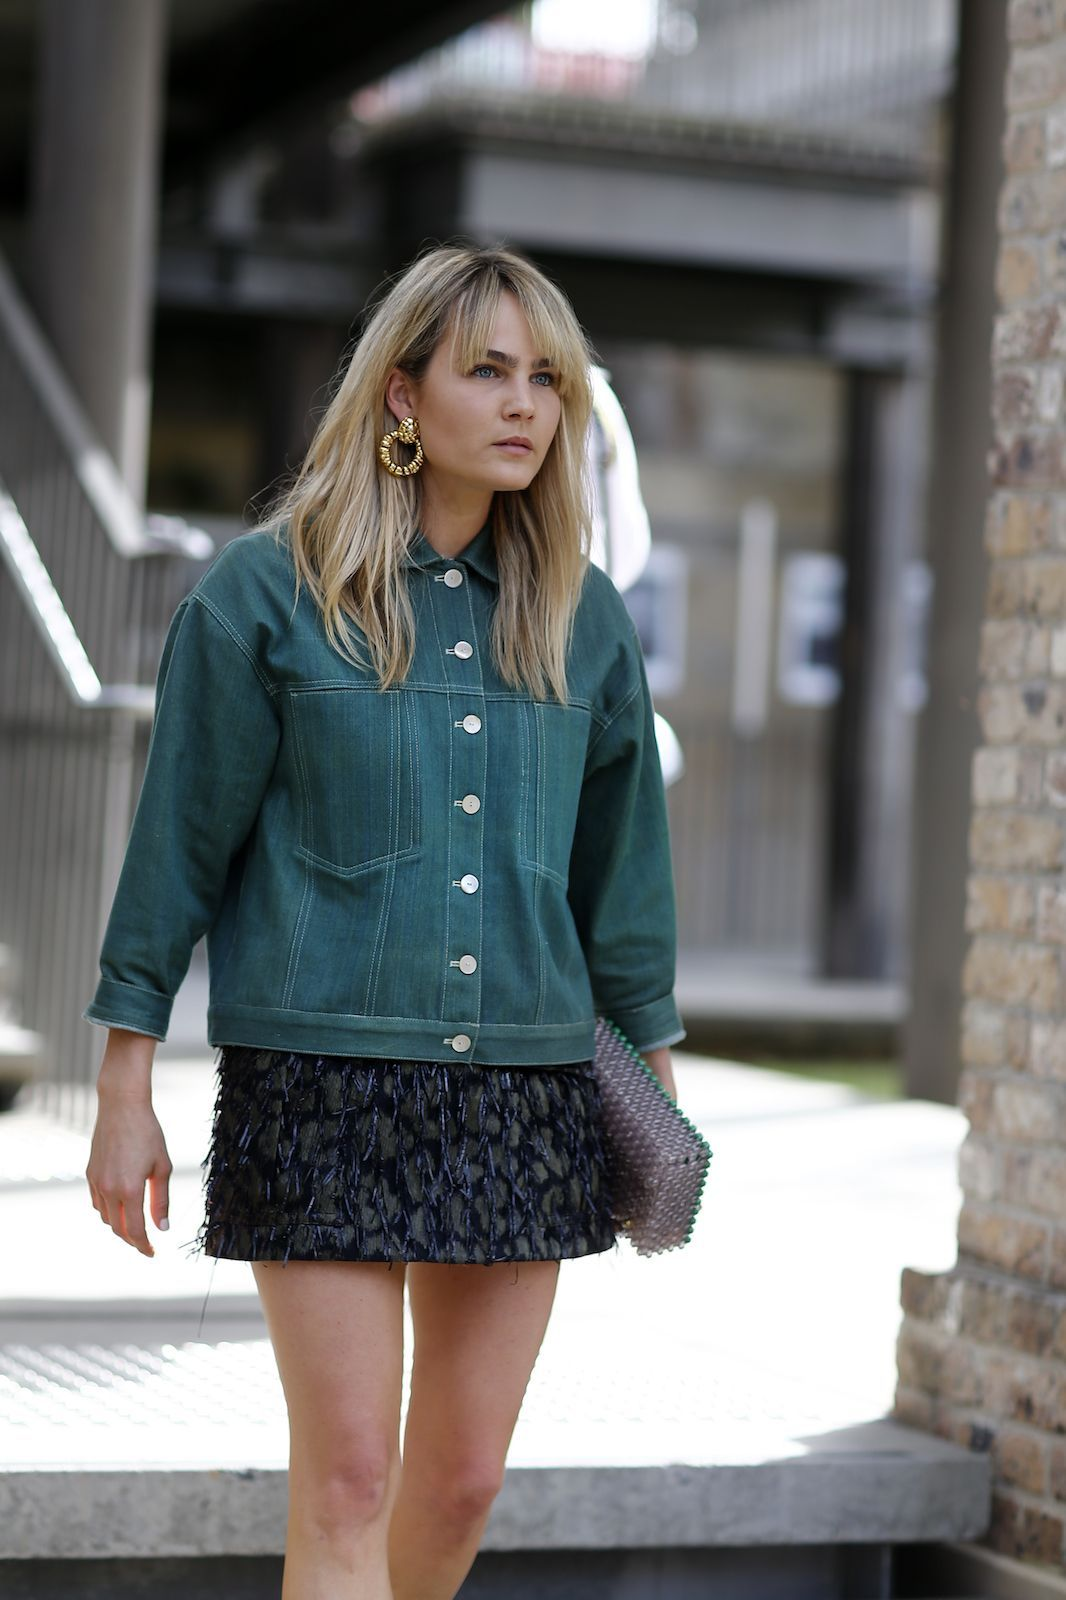 Go for mod vibes with a boxy jacket, mini skirt, and gold hoop earrings. #refinery29 http://www.refinery29.com/2016/05/111596/sydney-fashion-week-resort-2016-street-style-pictures#slide-31